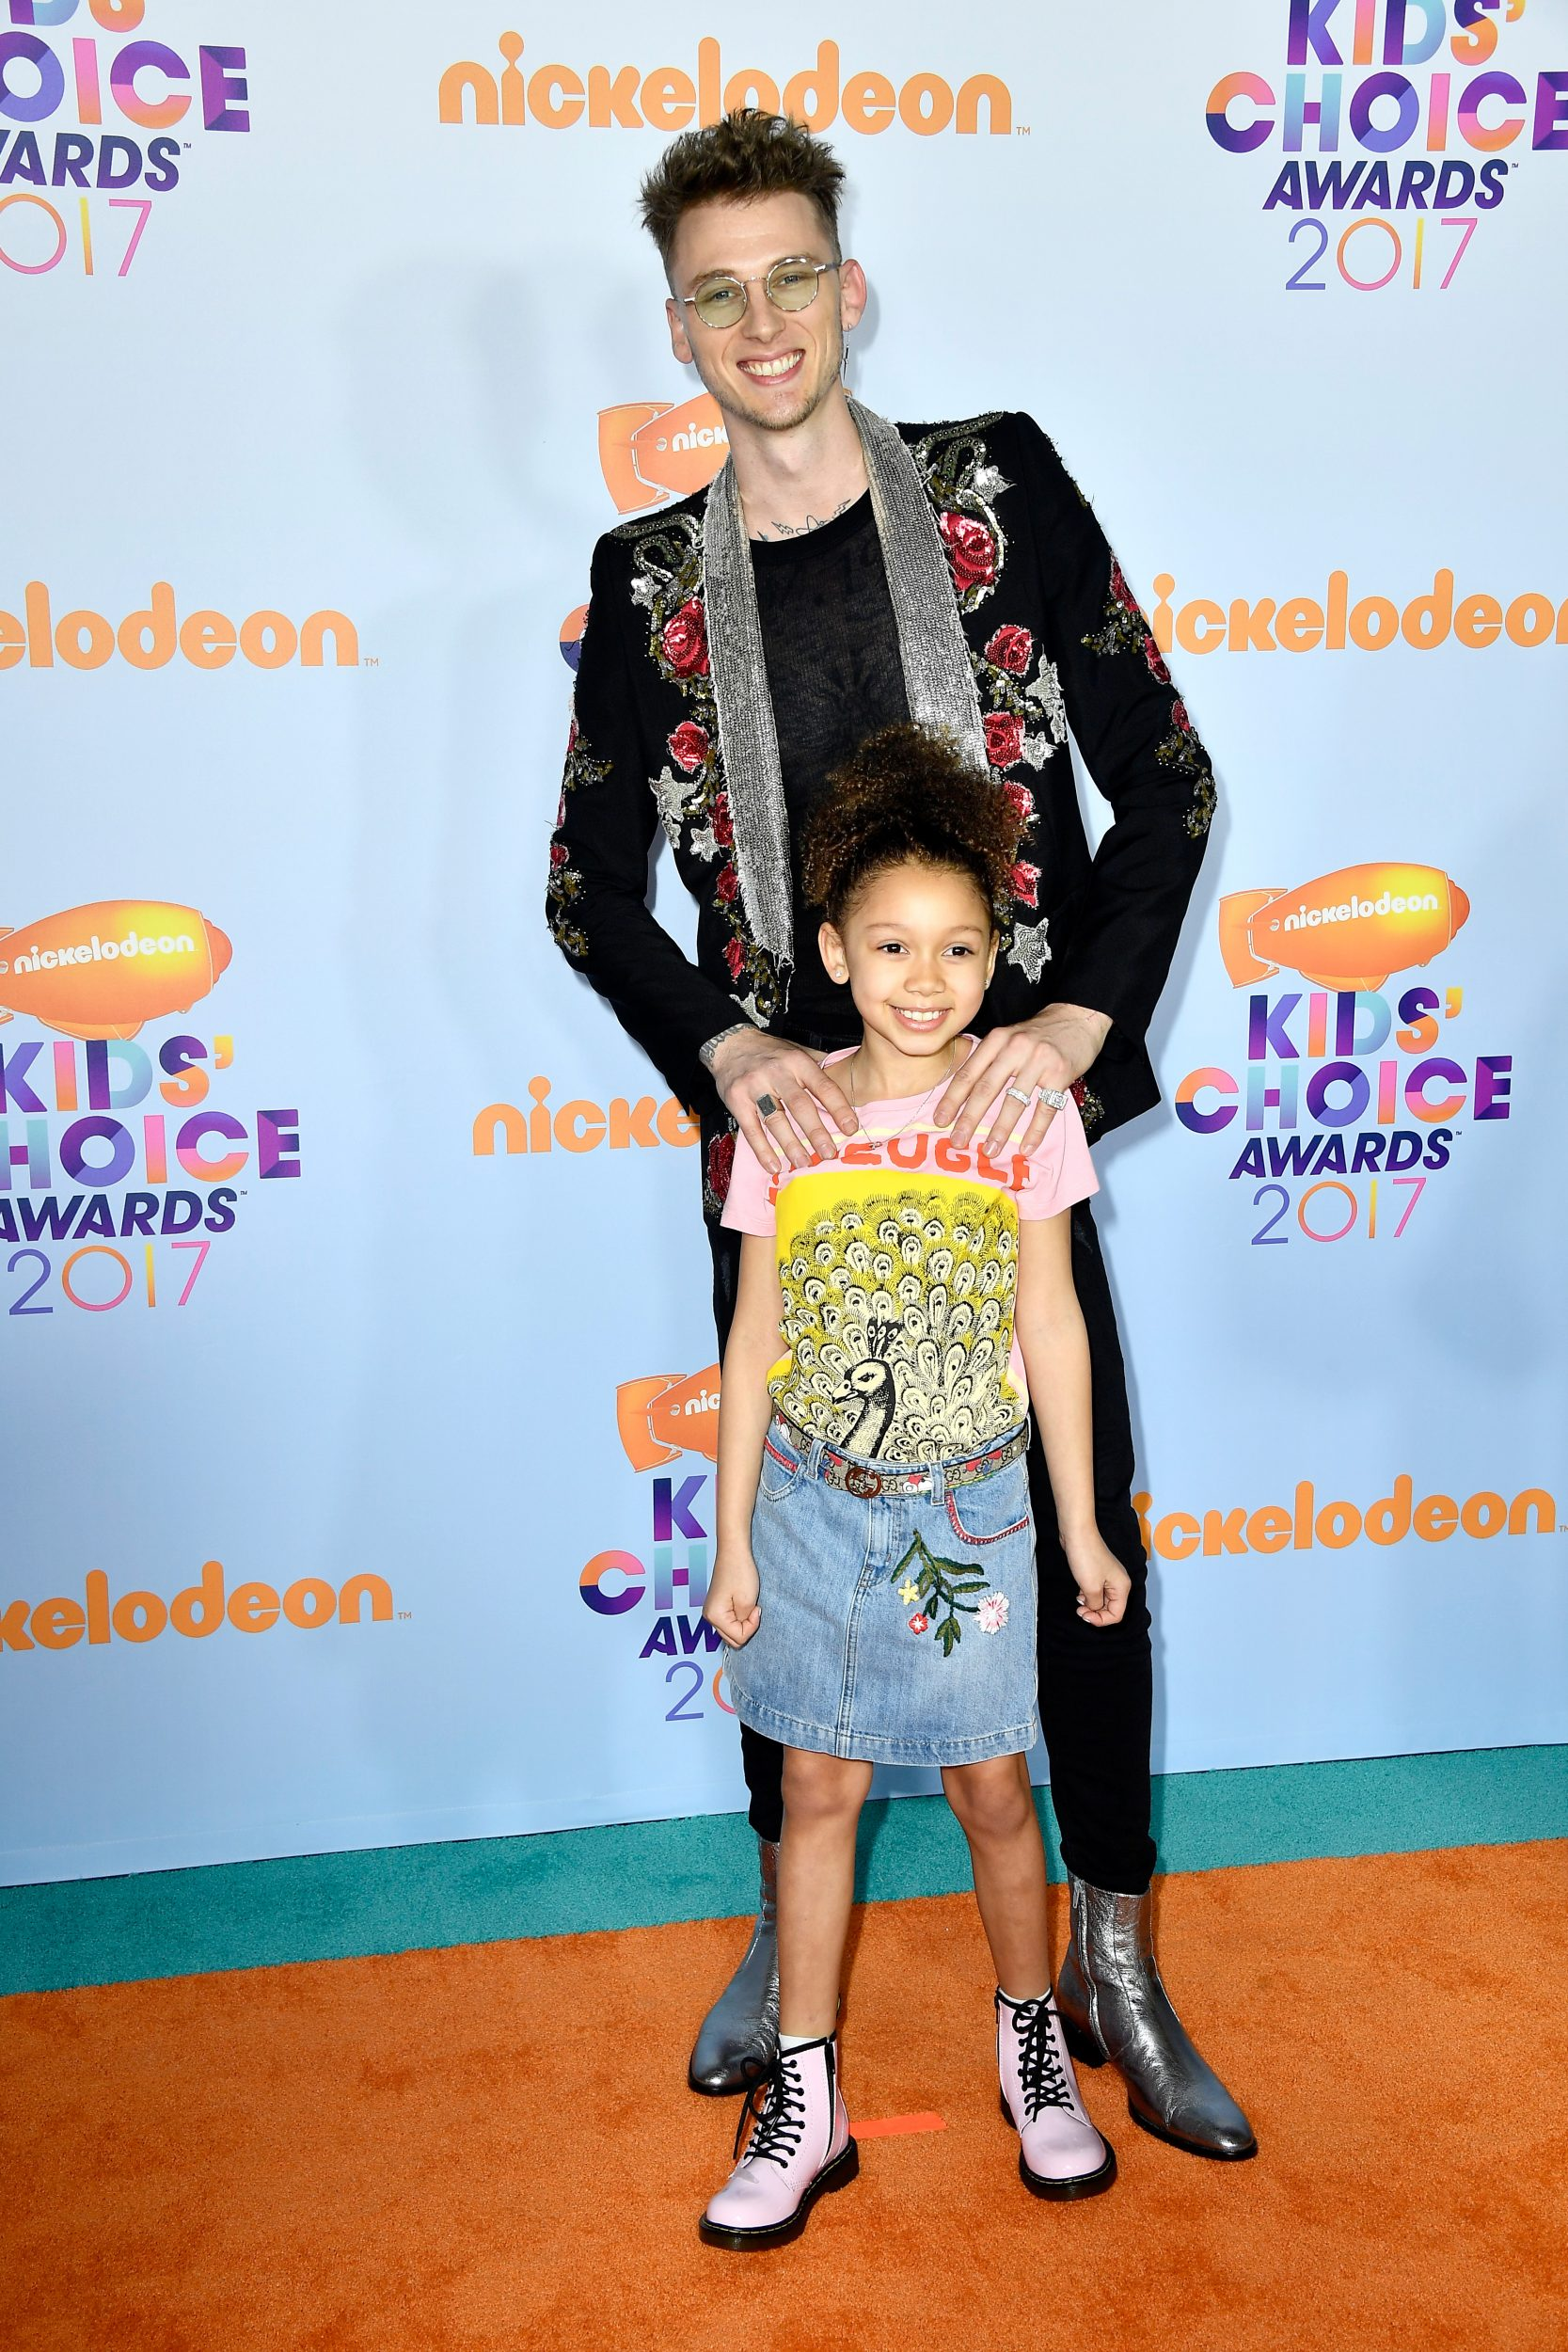 LOS ANGELES, CA - MARCH 11:  Recording artist Machine Gun Kelly and Casie Colson Baker at Nickelodeon's 2017 Kids' Choice Awards at USC Galen Center on March 11, 2017 in Los Angeles, California.  (Photo by Frazer Harrison/Getty Images - Issued to Media by Nickelodeon)